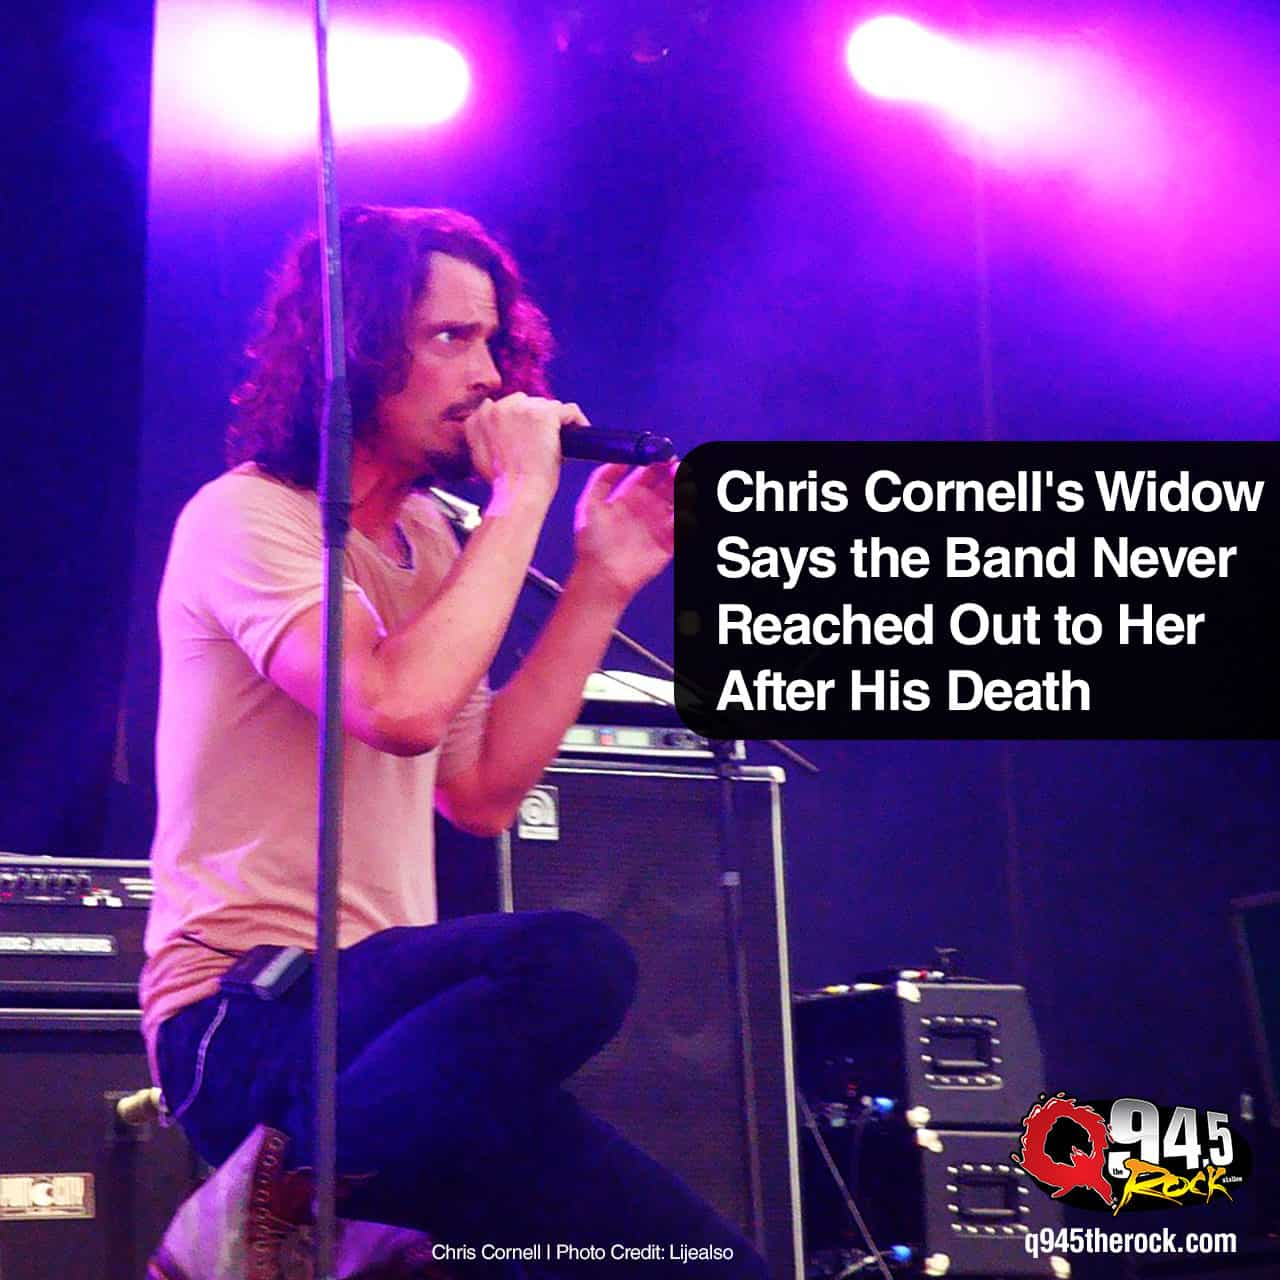 Chris Cornell's Widow Says the Band Never Reached Out to Her After His Death